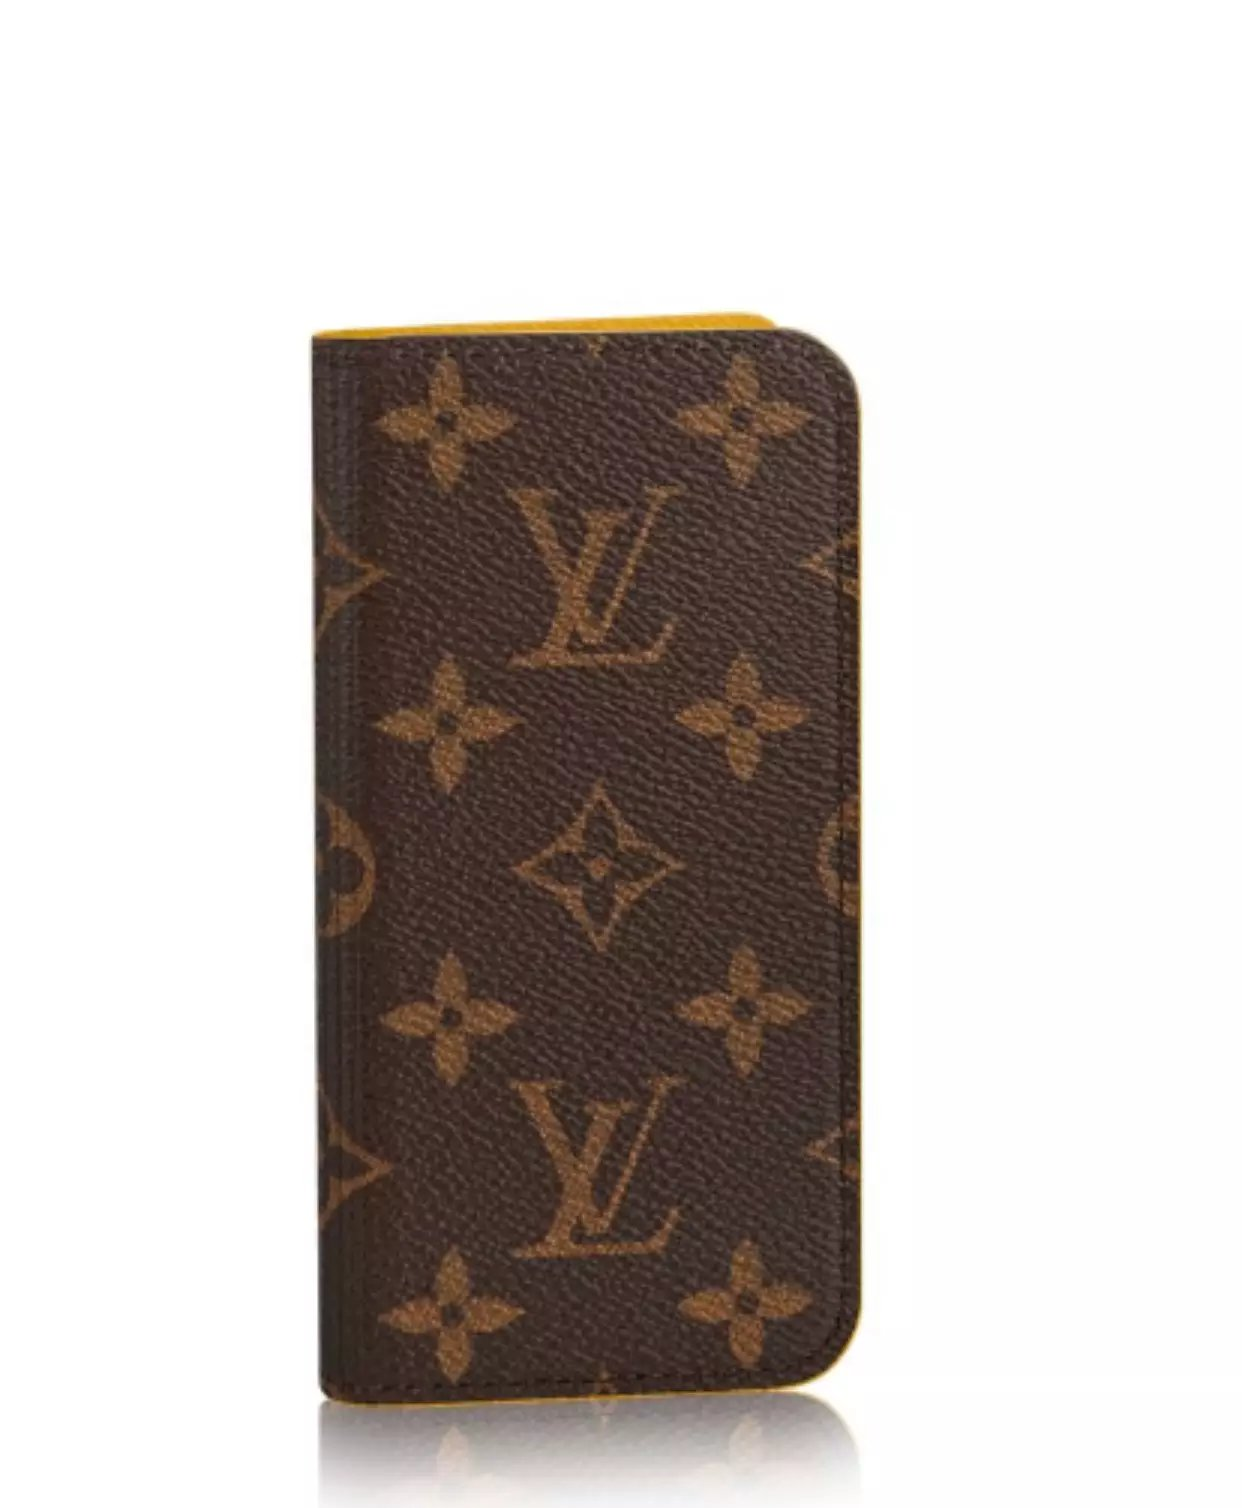 iphone handyhülle schutzhülle iphone Louis Vuitton iphone 8 hüllen personalisierte handyhülle die coolsten handy hüllen verkaufe iphone 8 beste iphone hülle iphone 8 hutzhülle silikon original iphone 8 hülle